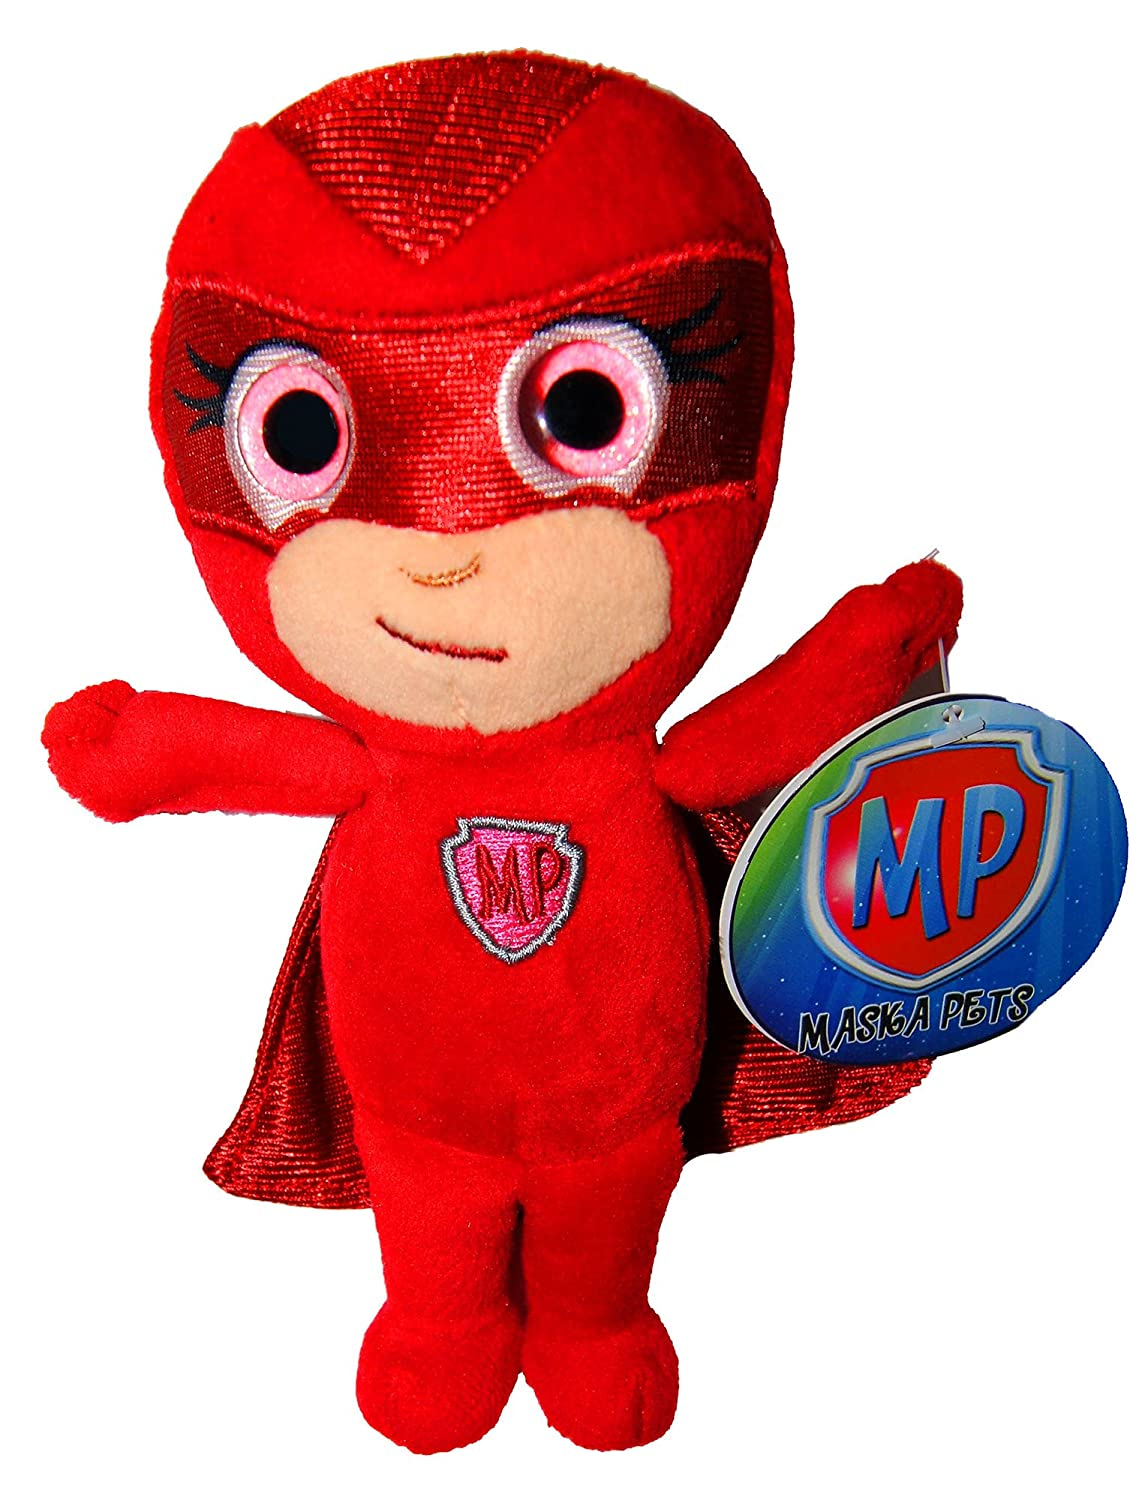 Amazon.es: PJ Masks Plush, juguetes de peluche, original, 3 diferentes personajes disponibles! 22cm / 8.6